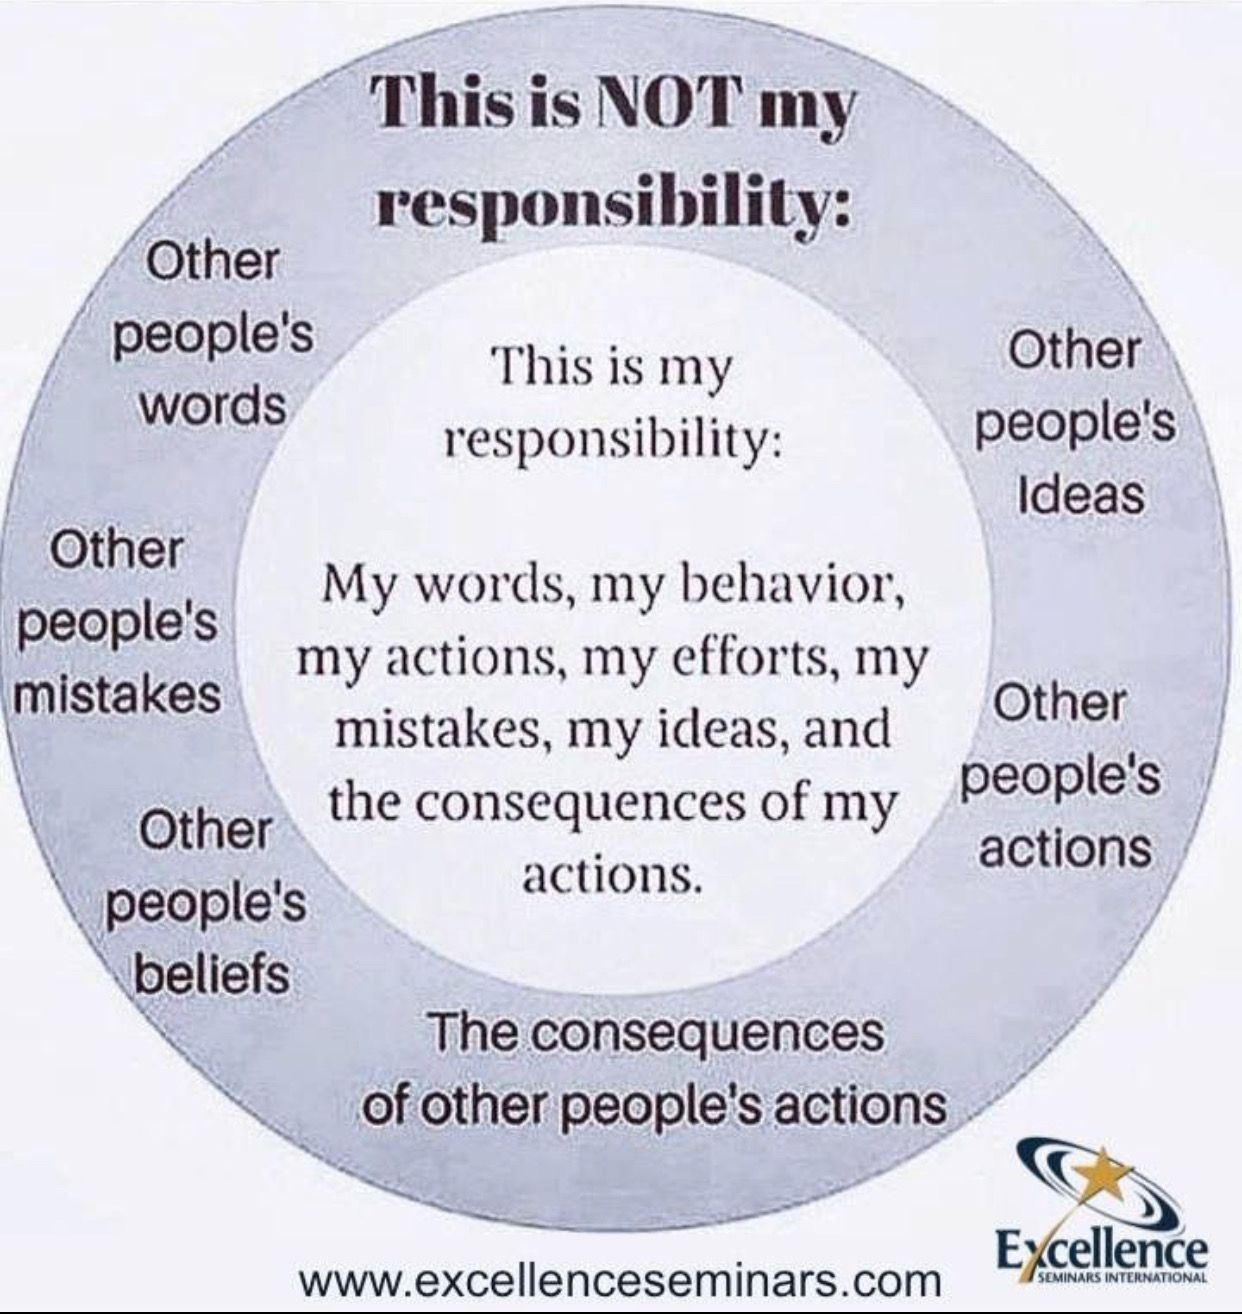 Circle Of Concern Responsibility In My Control Our If My Control